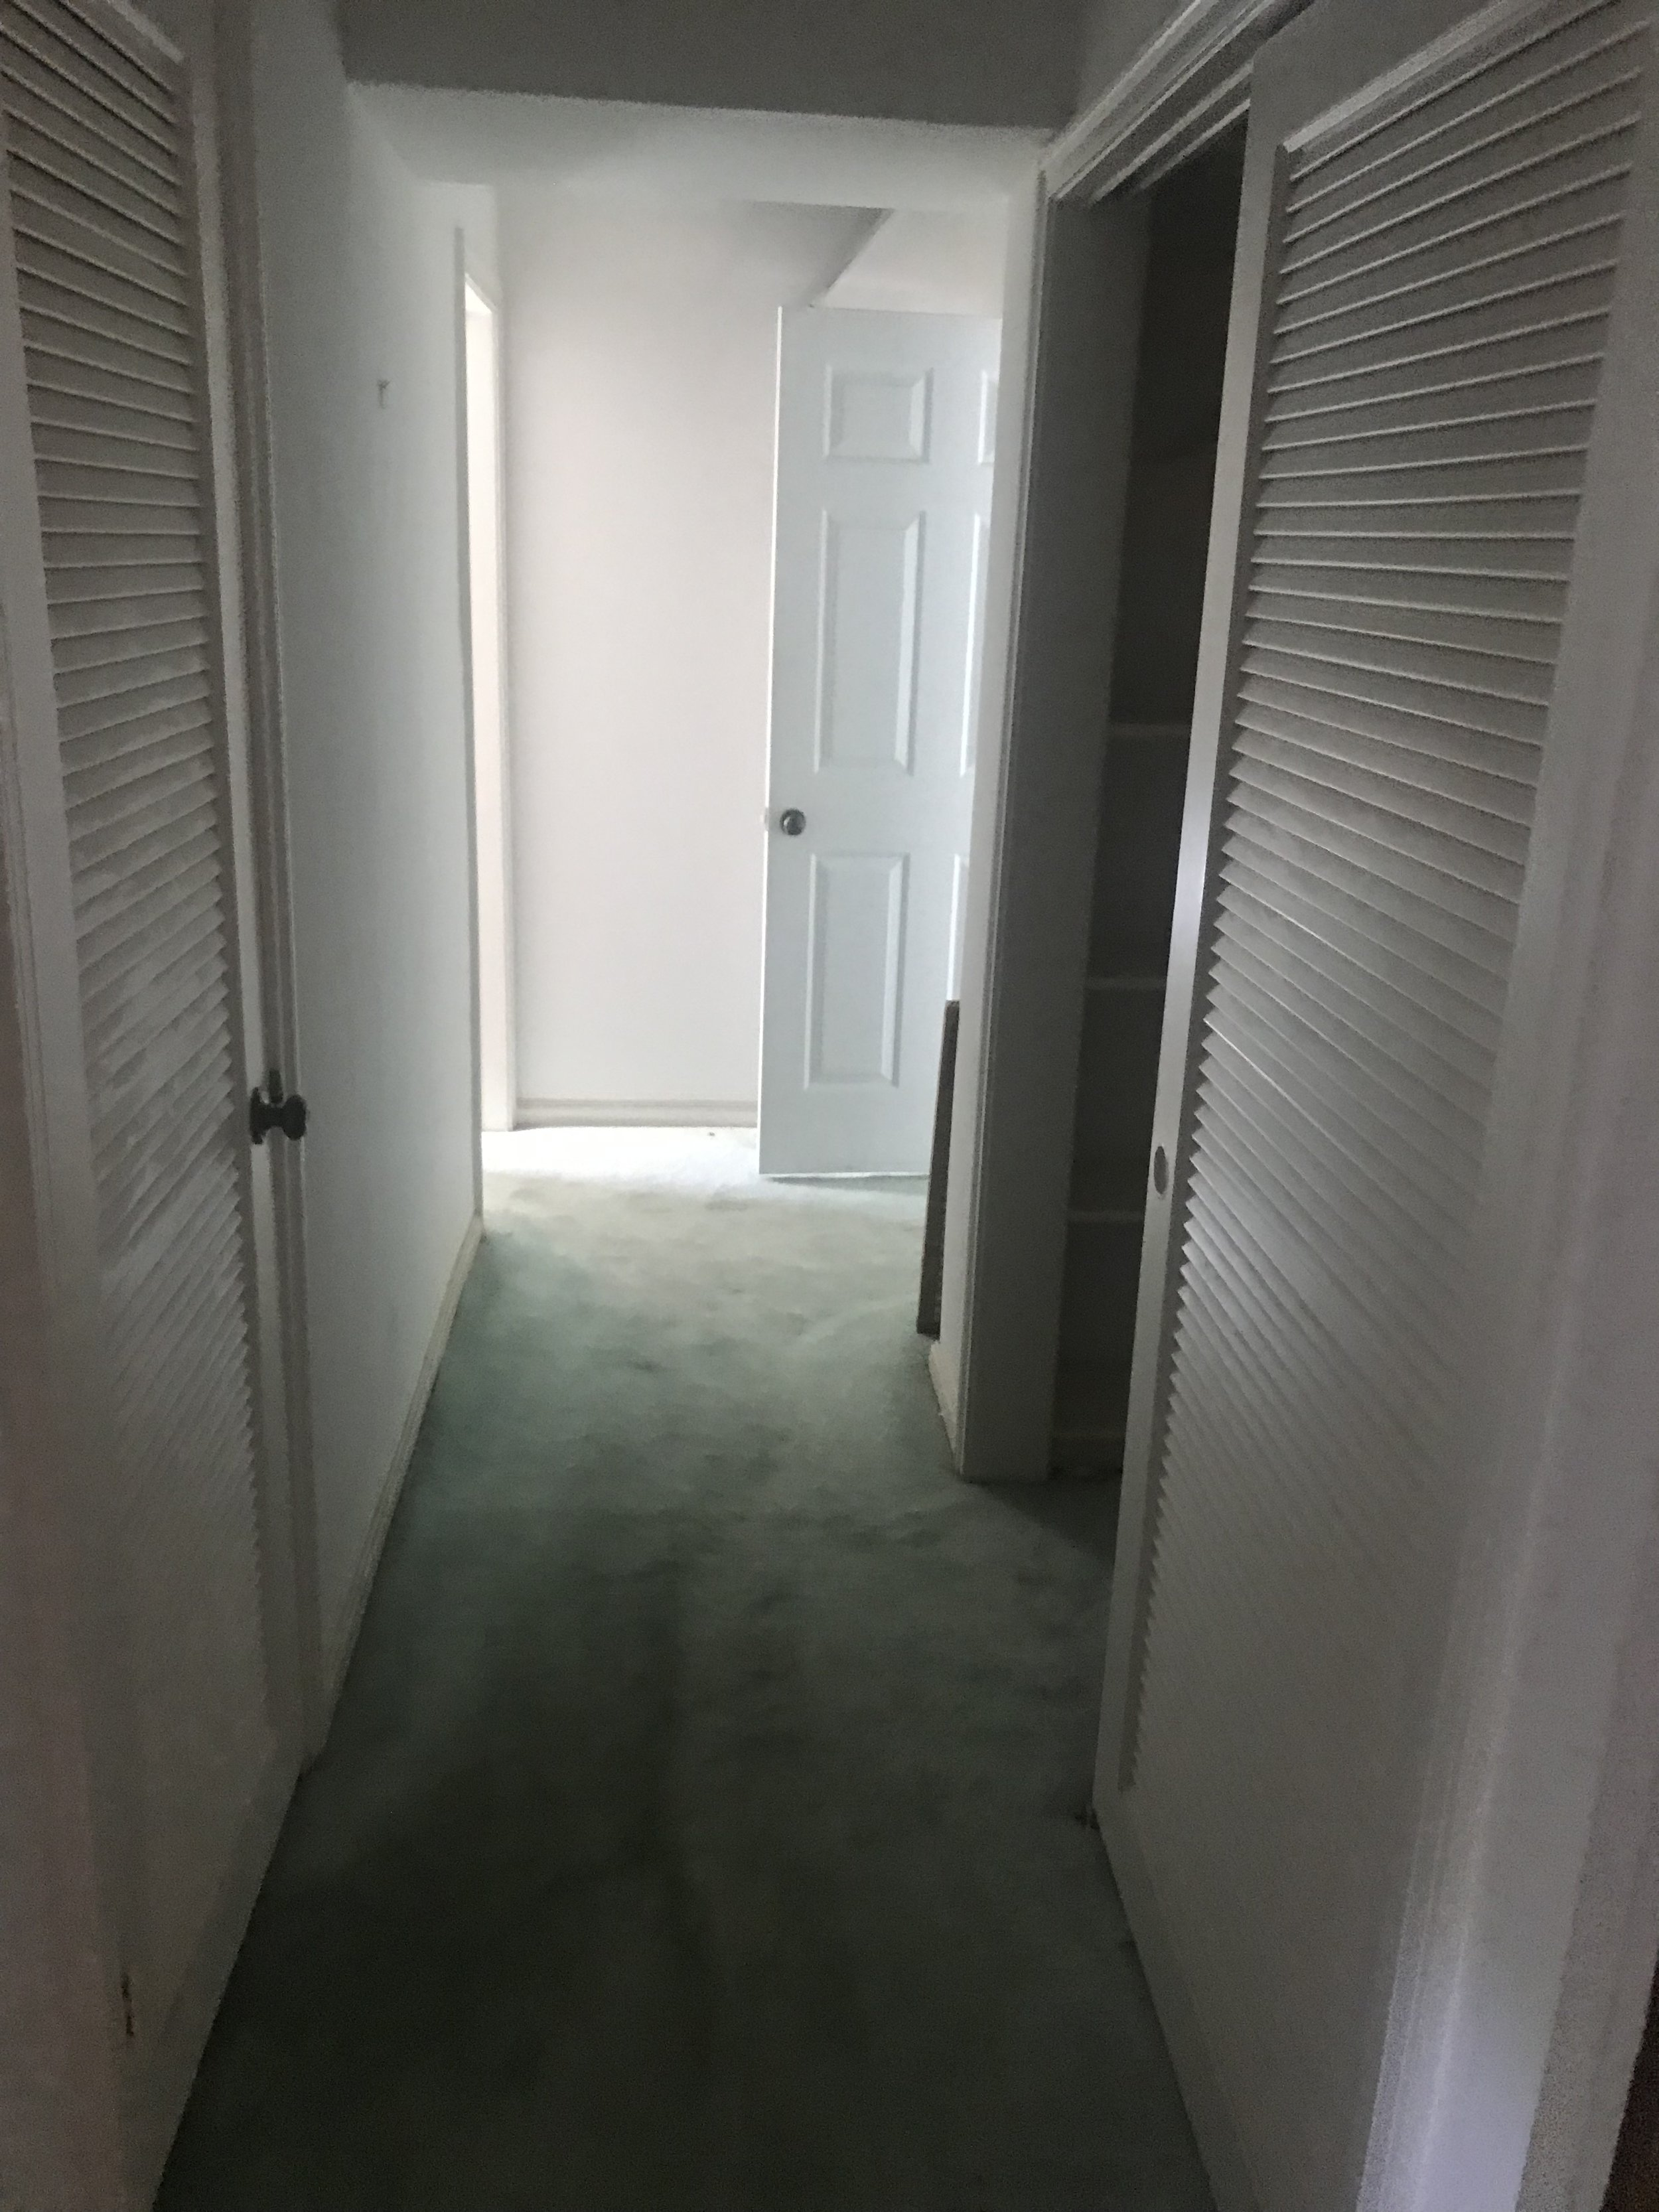 Hallway leading to the bath/closet area. This whole area is being ripped out and reworked to allow for a larger bedroom, closet and master bath.